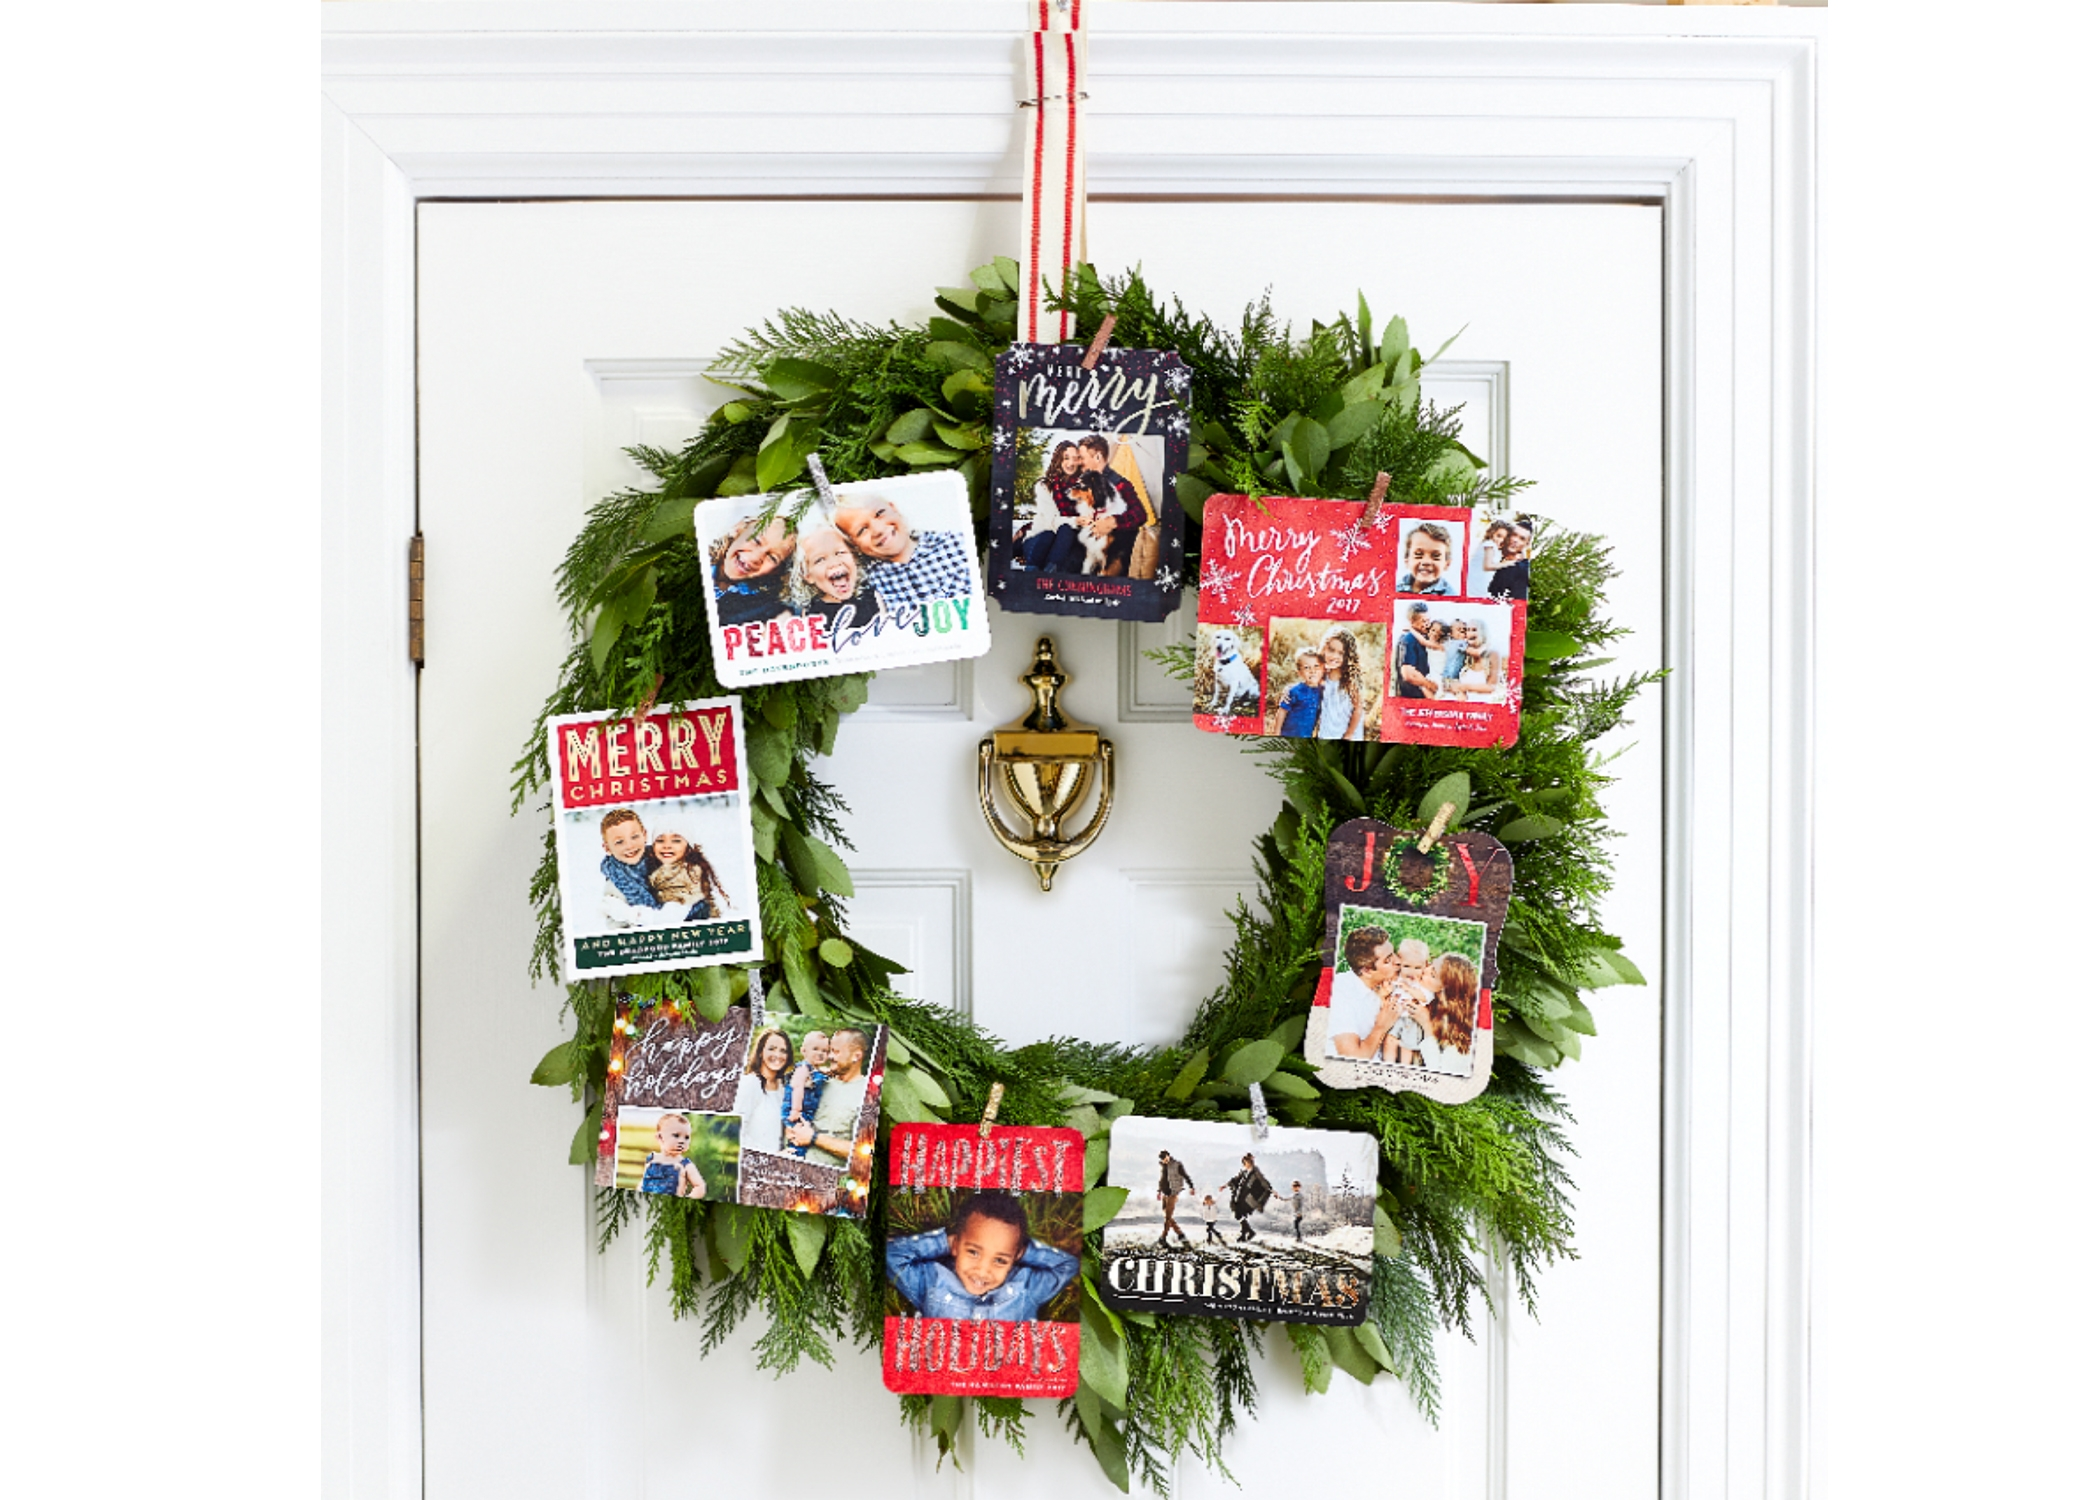 holiday cards hanging on wreath